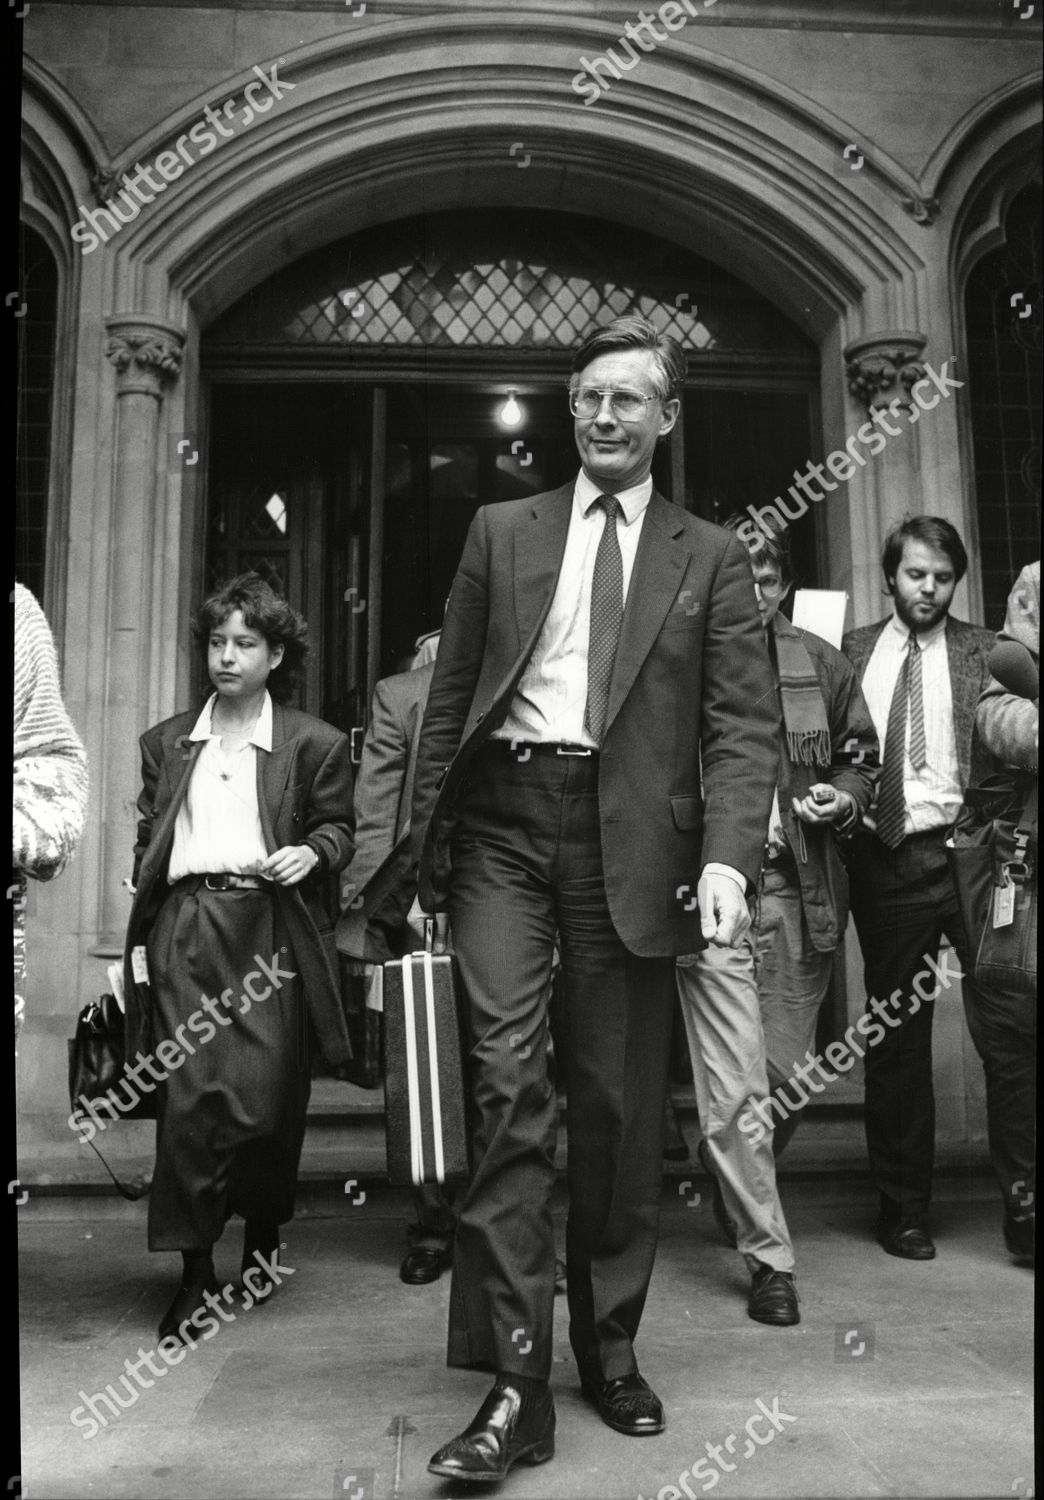 1129b1c80f4 Michael Meacher Mp Leaving The High Court In London After Losing His Libel  Case Against The Observer Newspaper Stock Image by Associated Newspapers  for ...